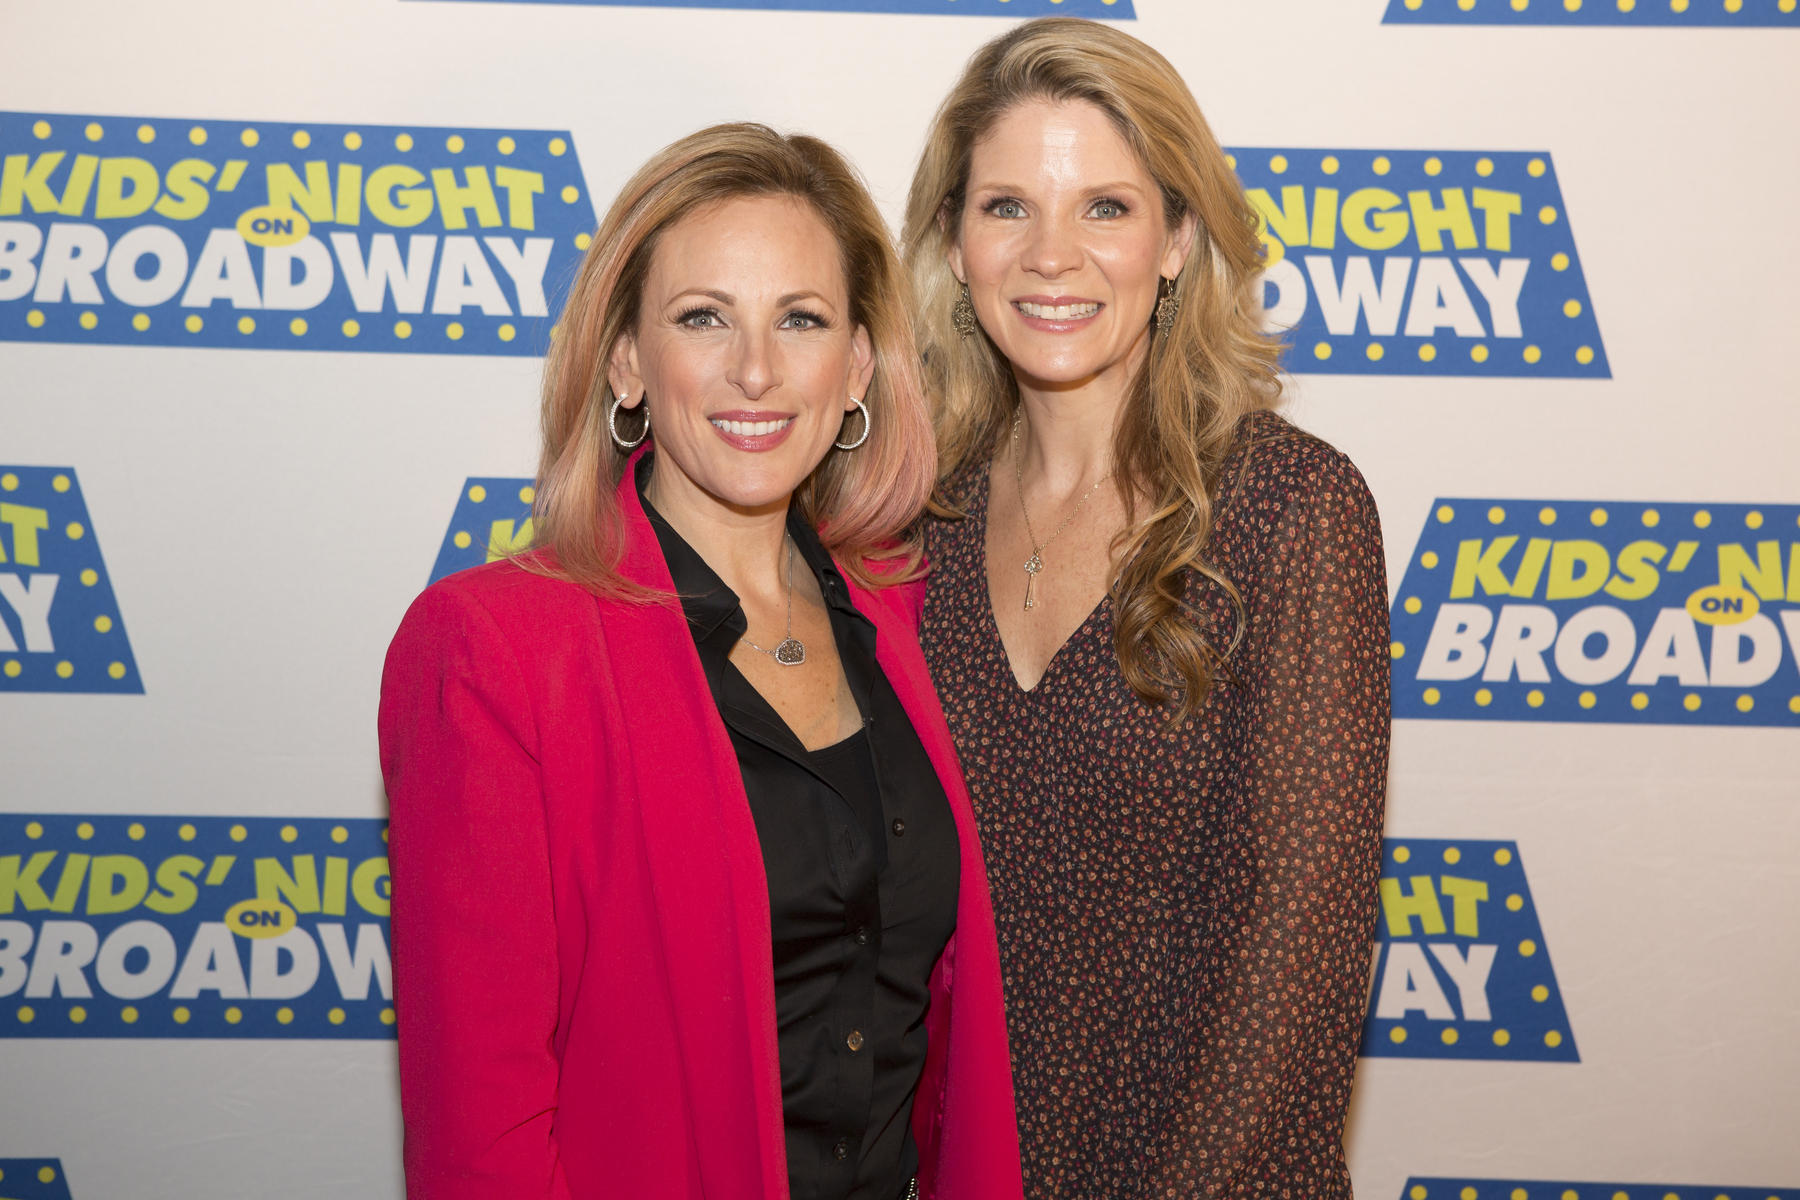 Kids and Theater: First-Show Advice From Tony Winner Kelli O'Hara